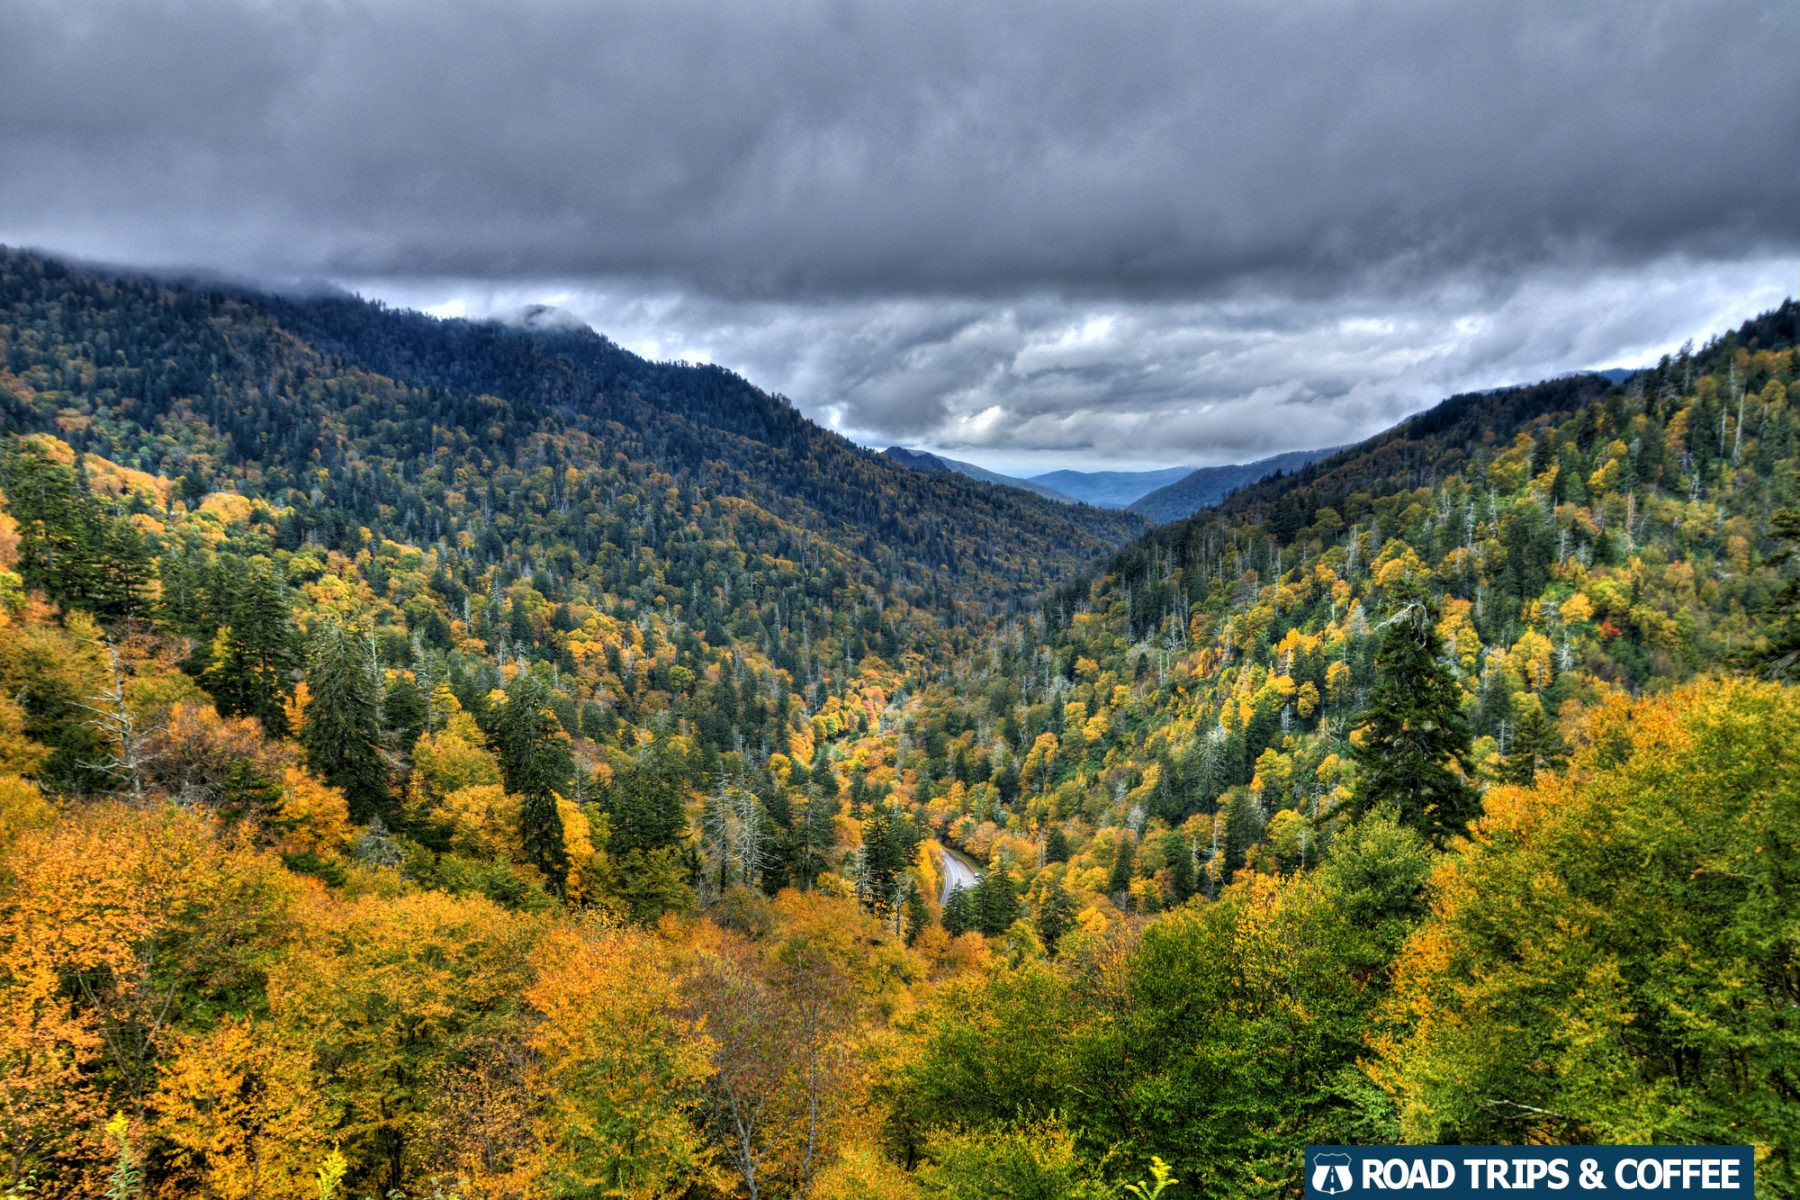 Yellow fall colors contrast the deep green evergreens throughout the Great Smoky Mountains National Park